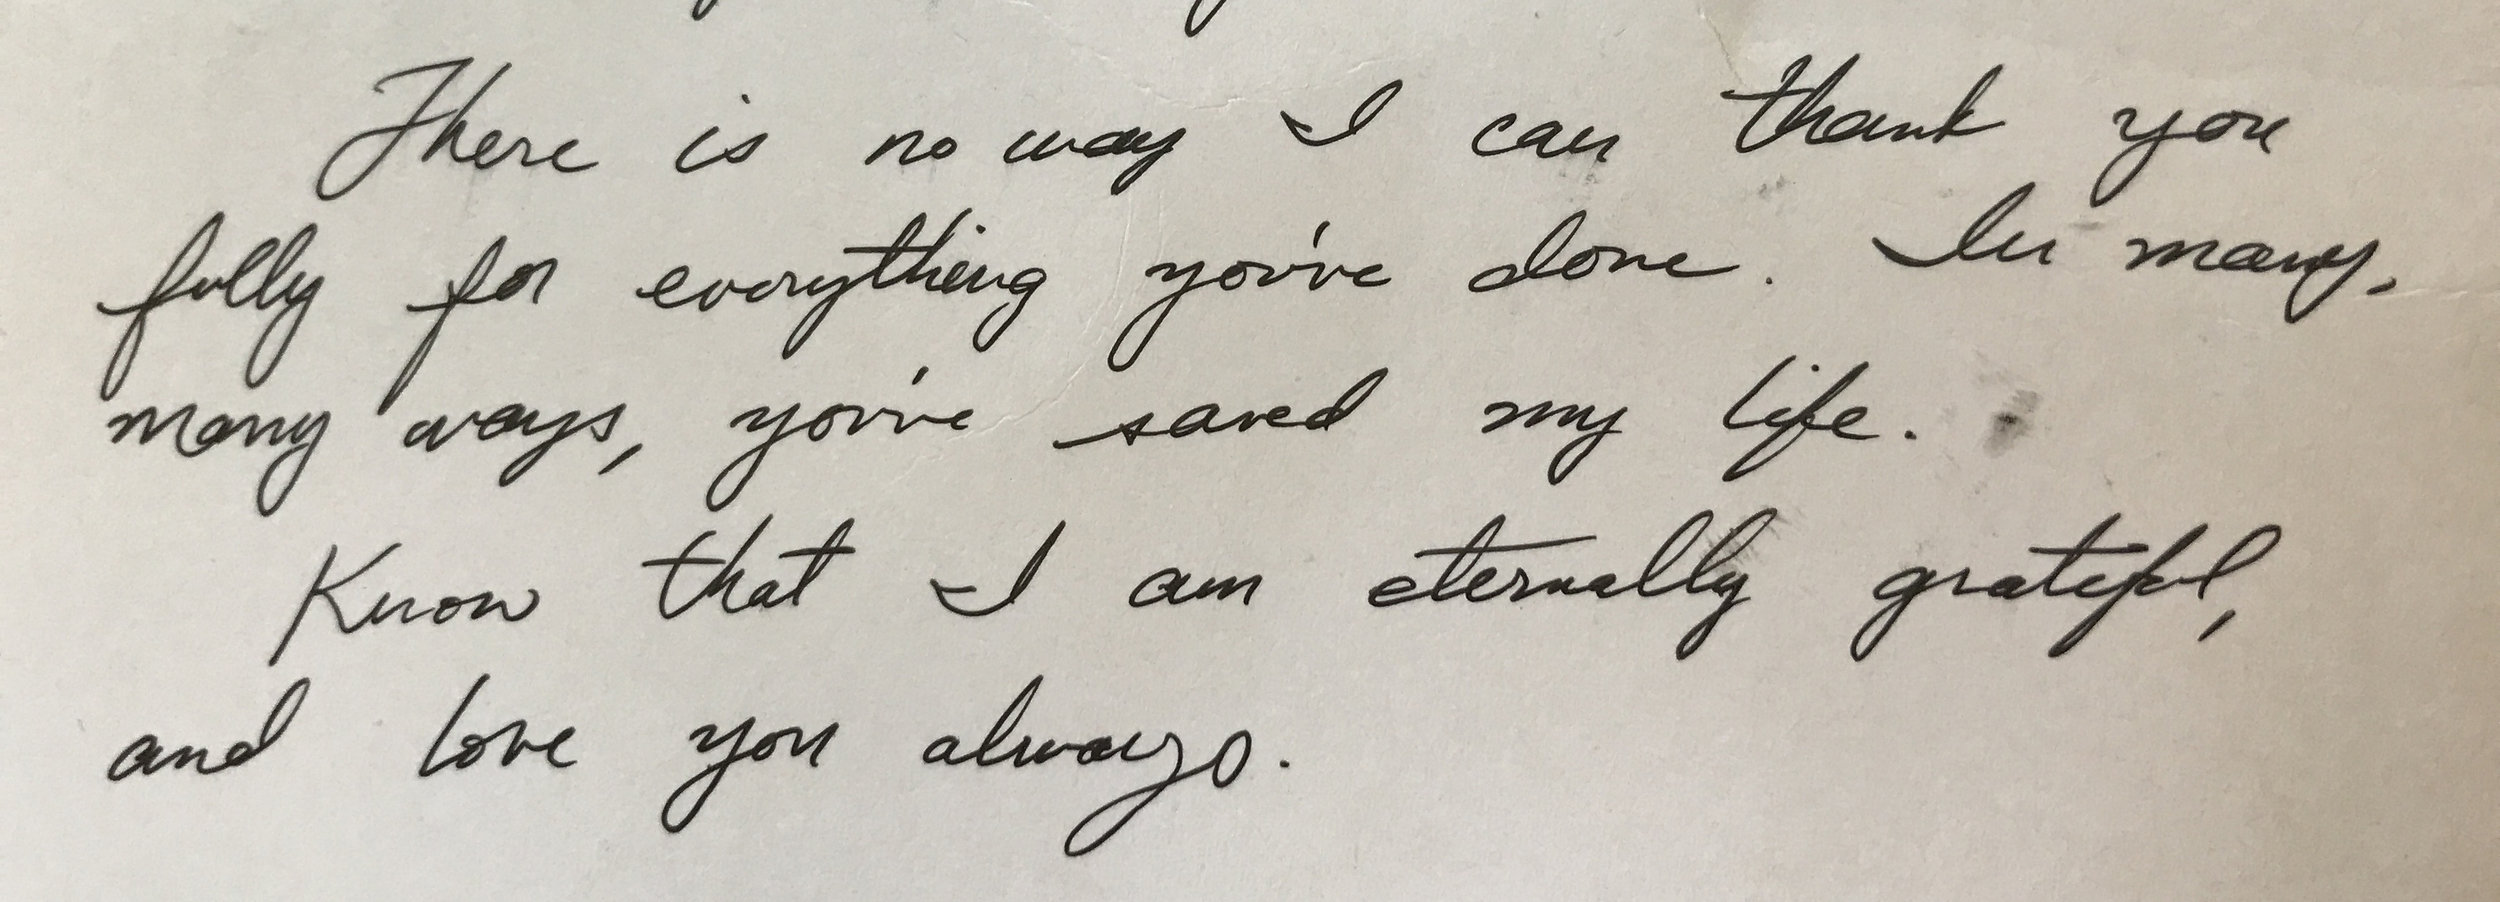 Marlena Tanner RDN Certified Eating Disorder Dietitian Nutrition Counseling Testimonial Note.jpg